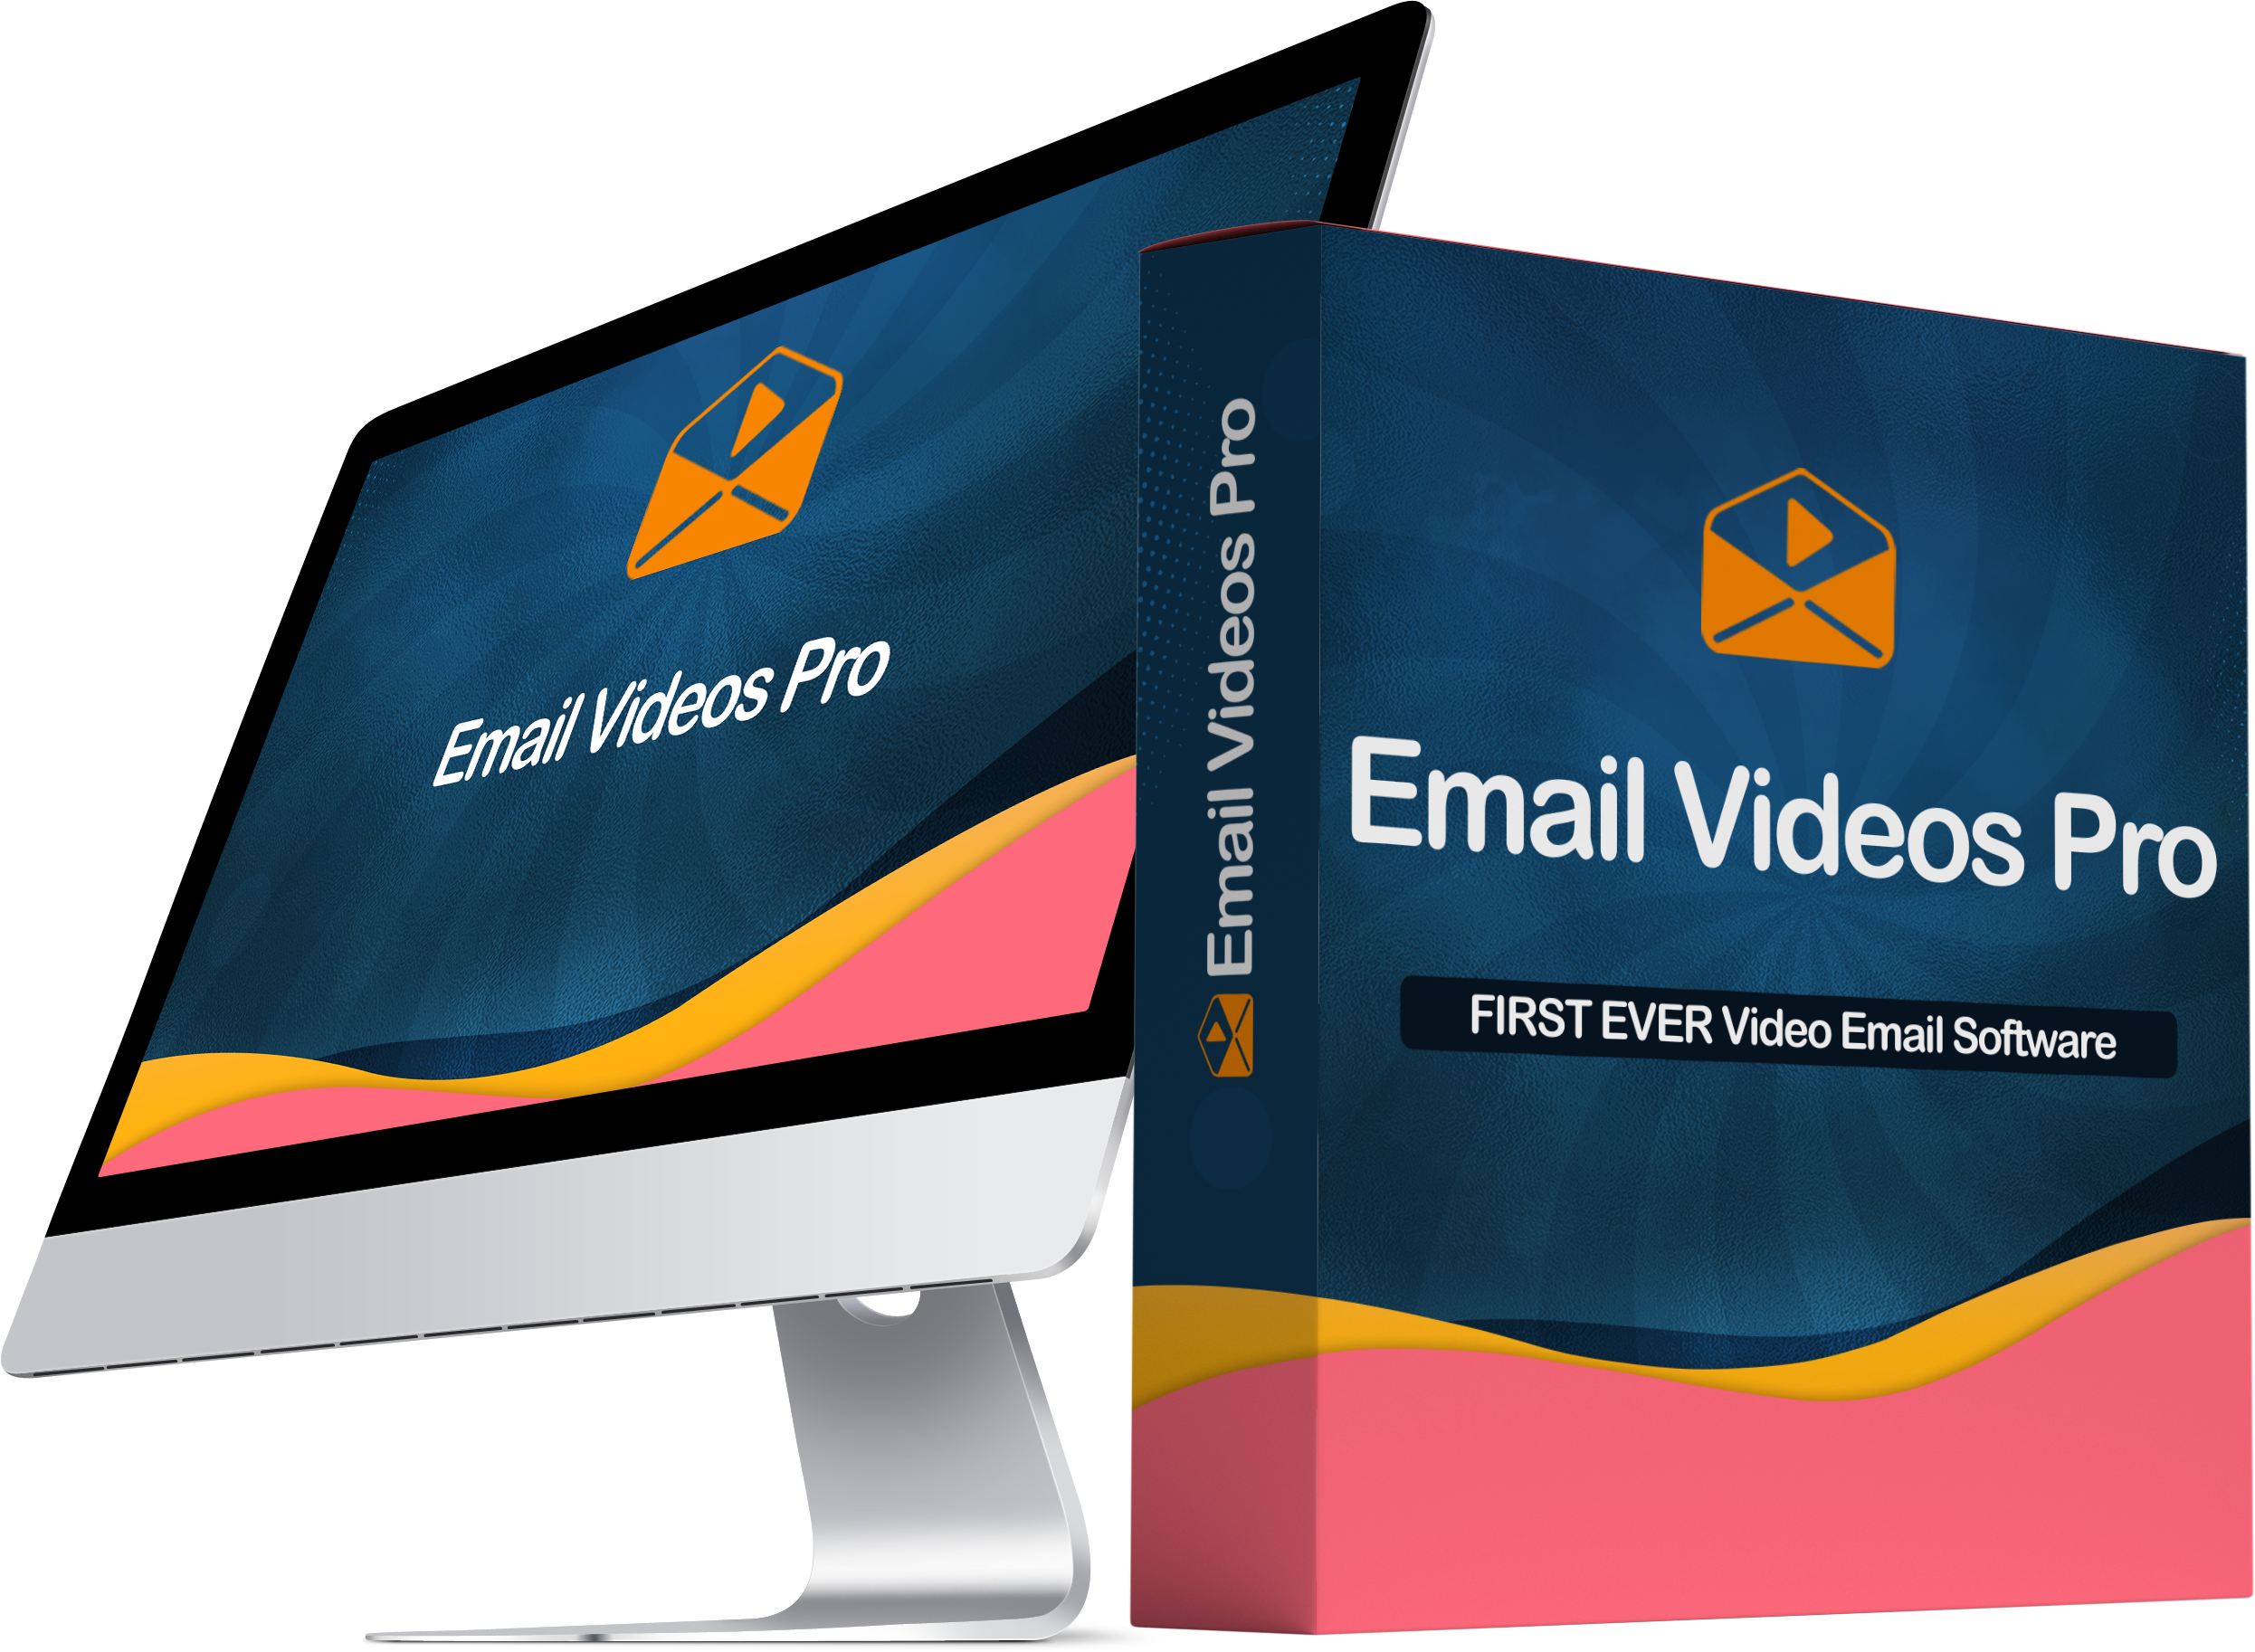 Email Videos Pro Review